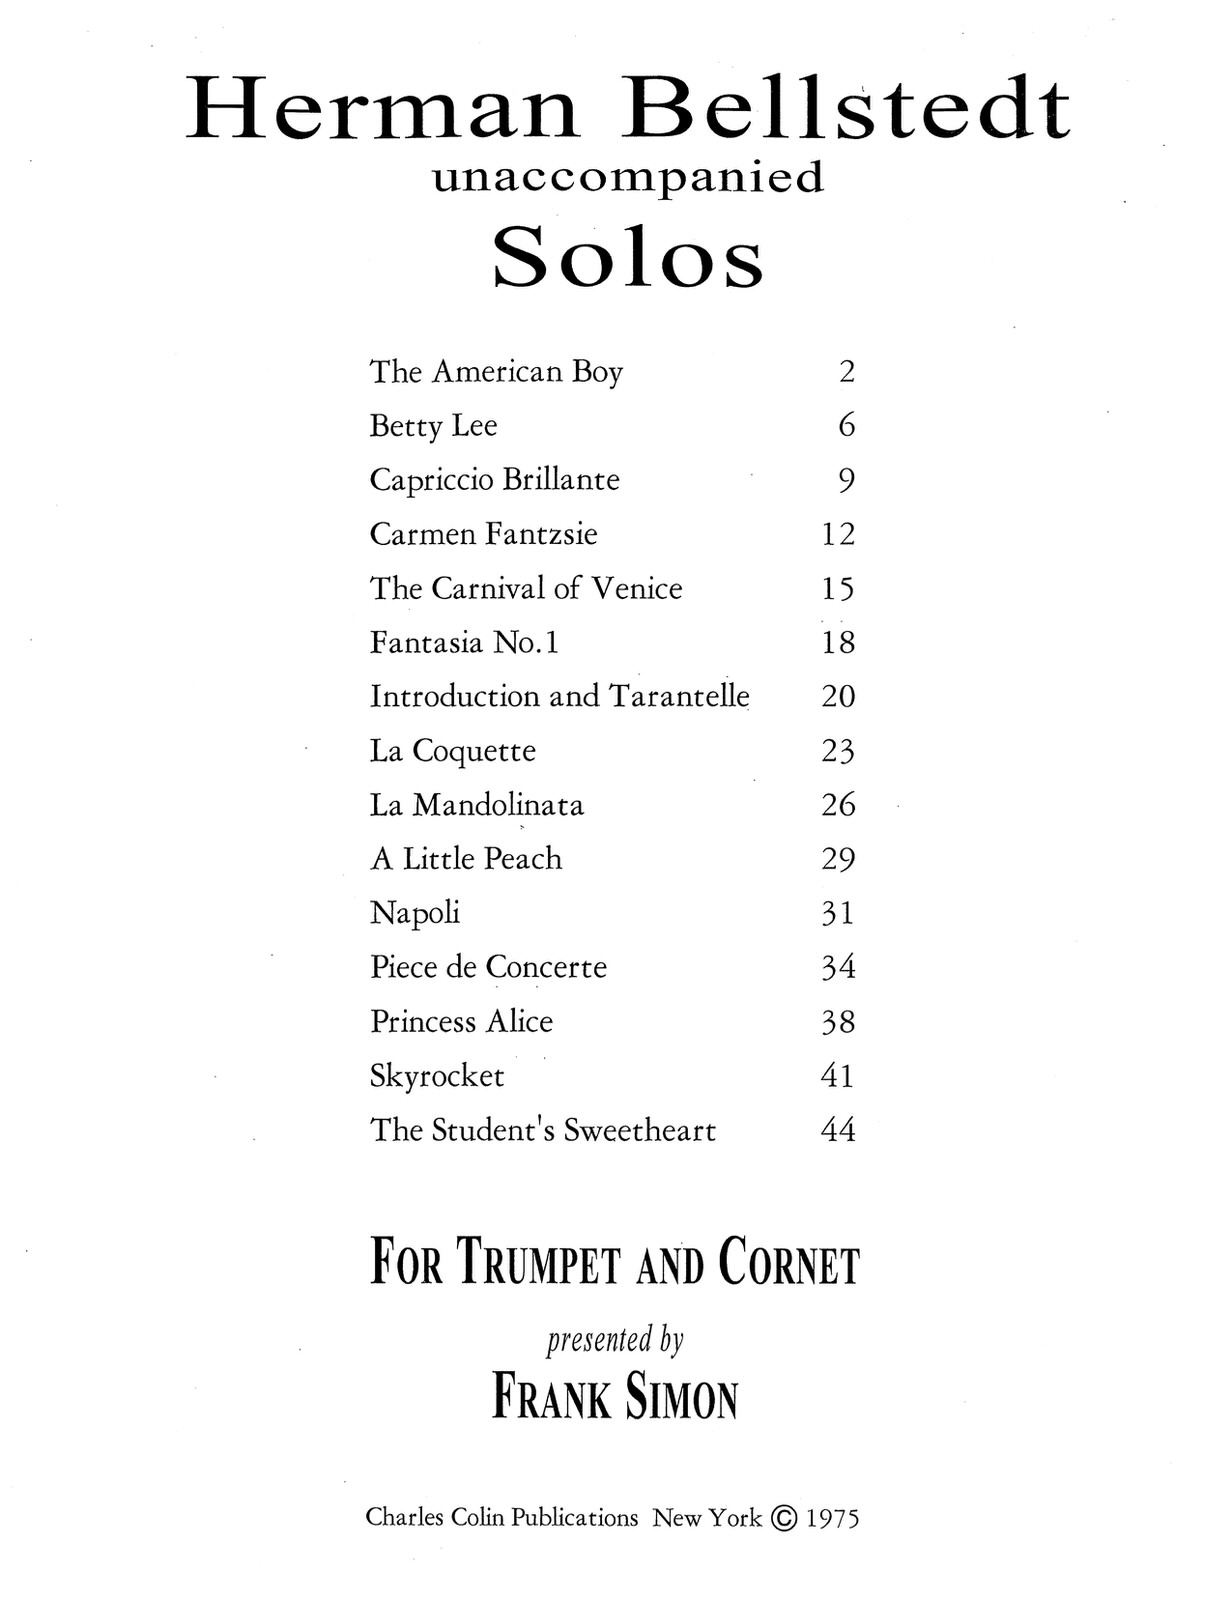 Bellstedt, Solos for Trumpet 2